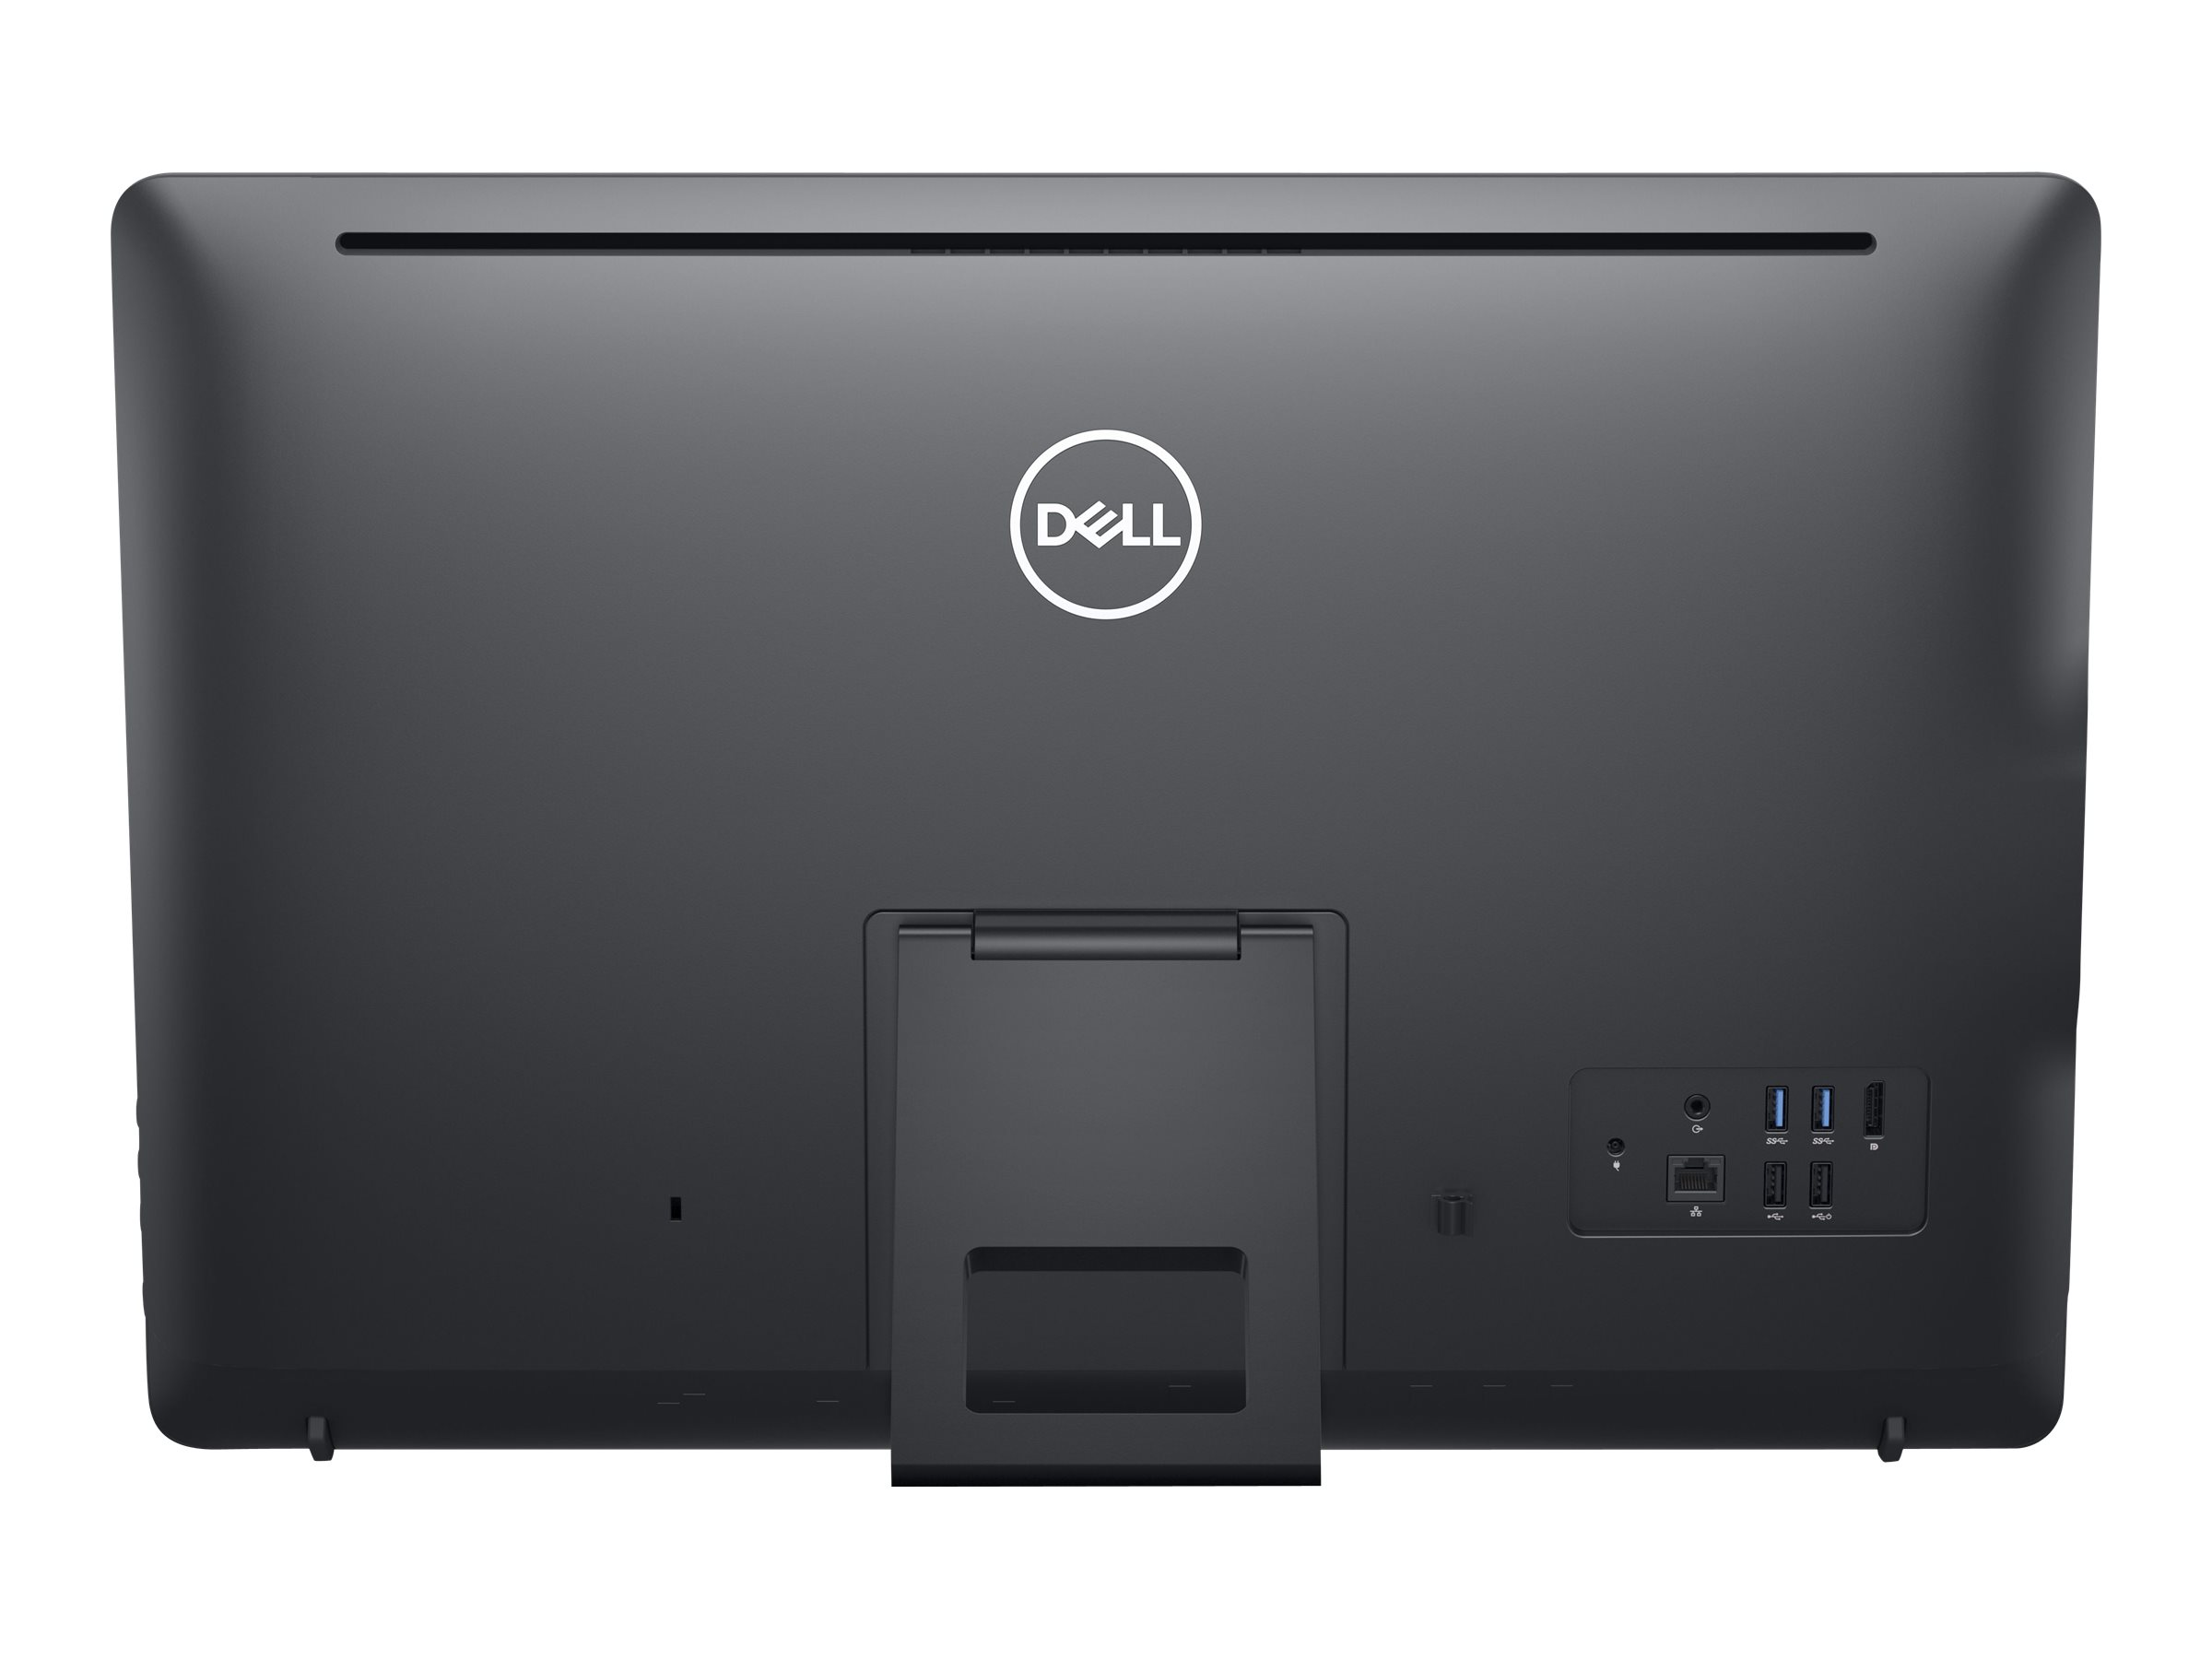 Dell Wyse 5470 All-in-One - all-in-one - Celeron J4105 1.5 GHz - 4 GB - SSD 16 GB - LCD 23.8